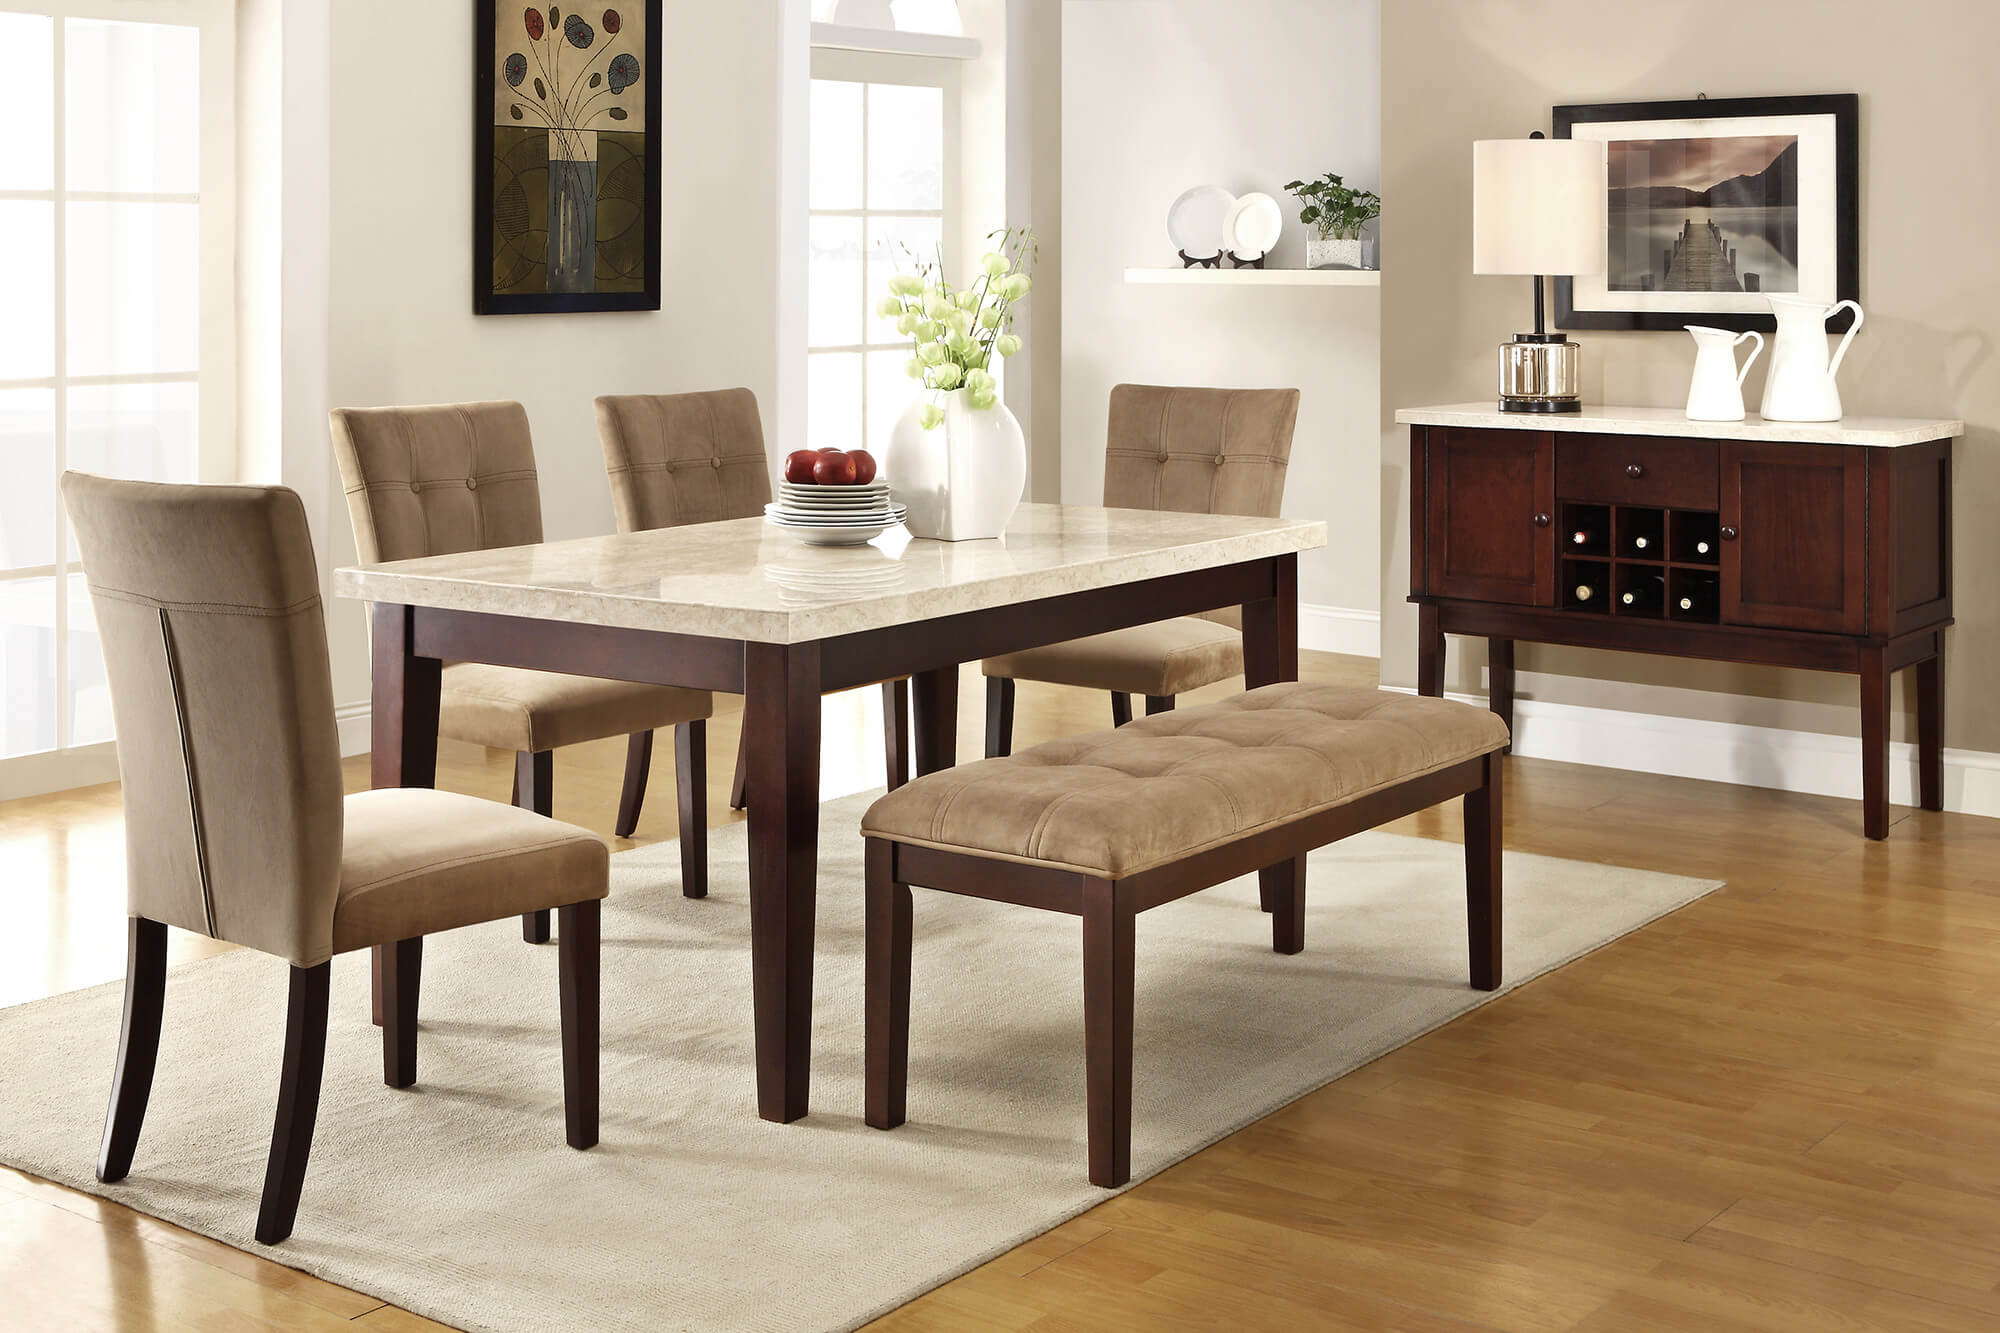 dining room sets bench seating kitchen table bench seat Here s a 6 piece rubberwood dining set with faux marble table top with tan upholstery for